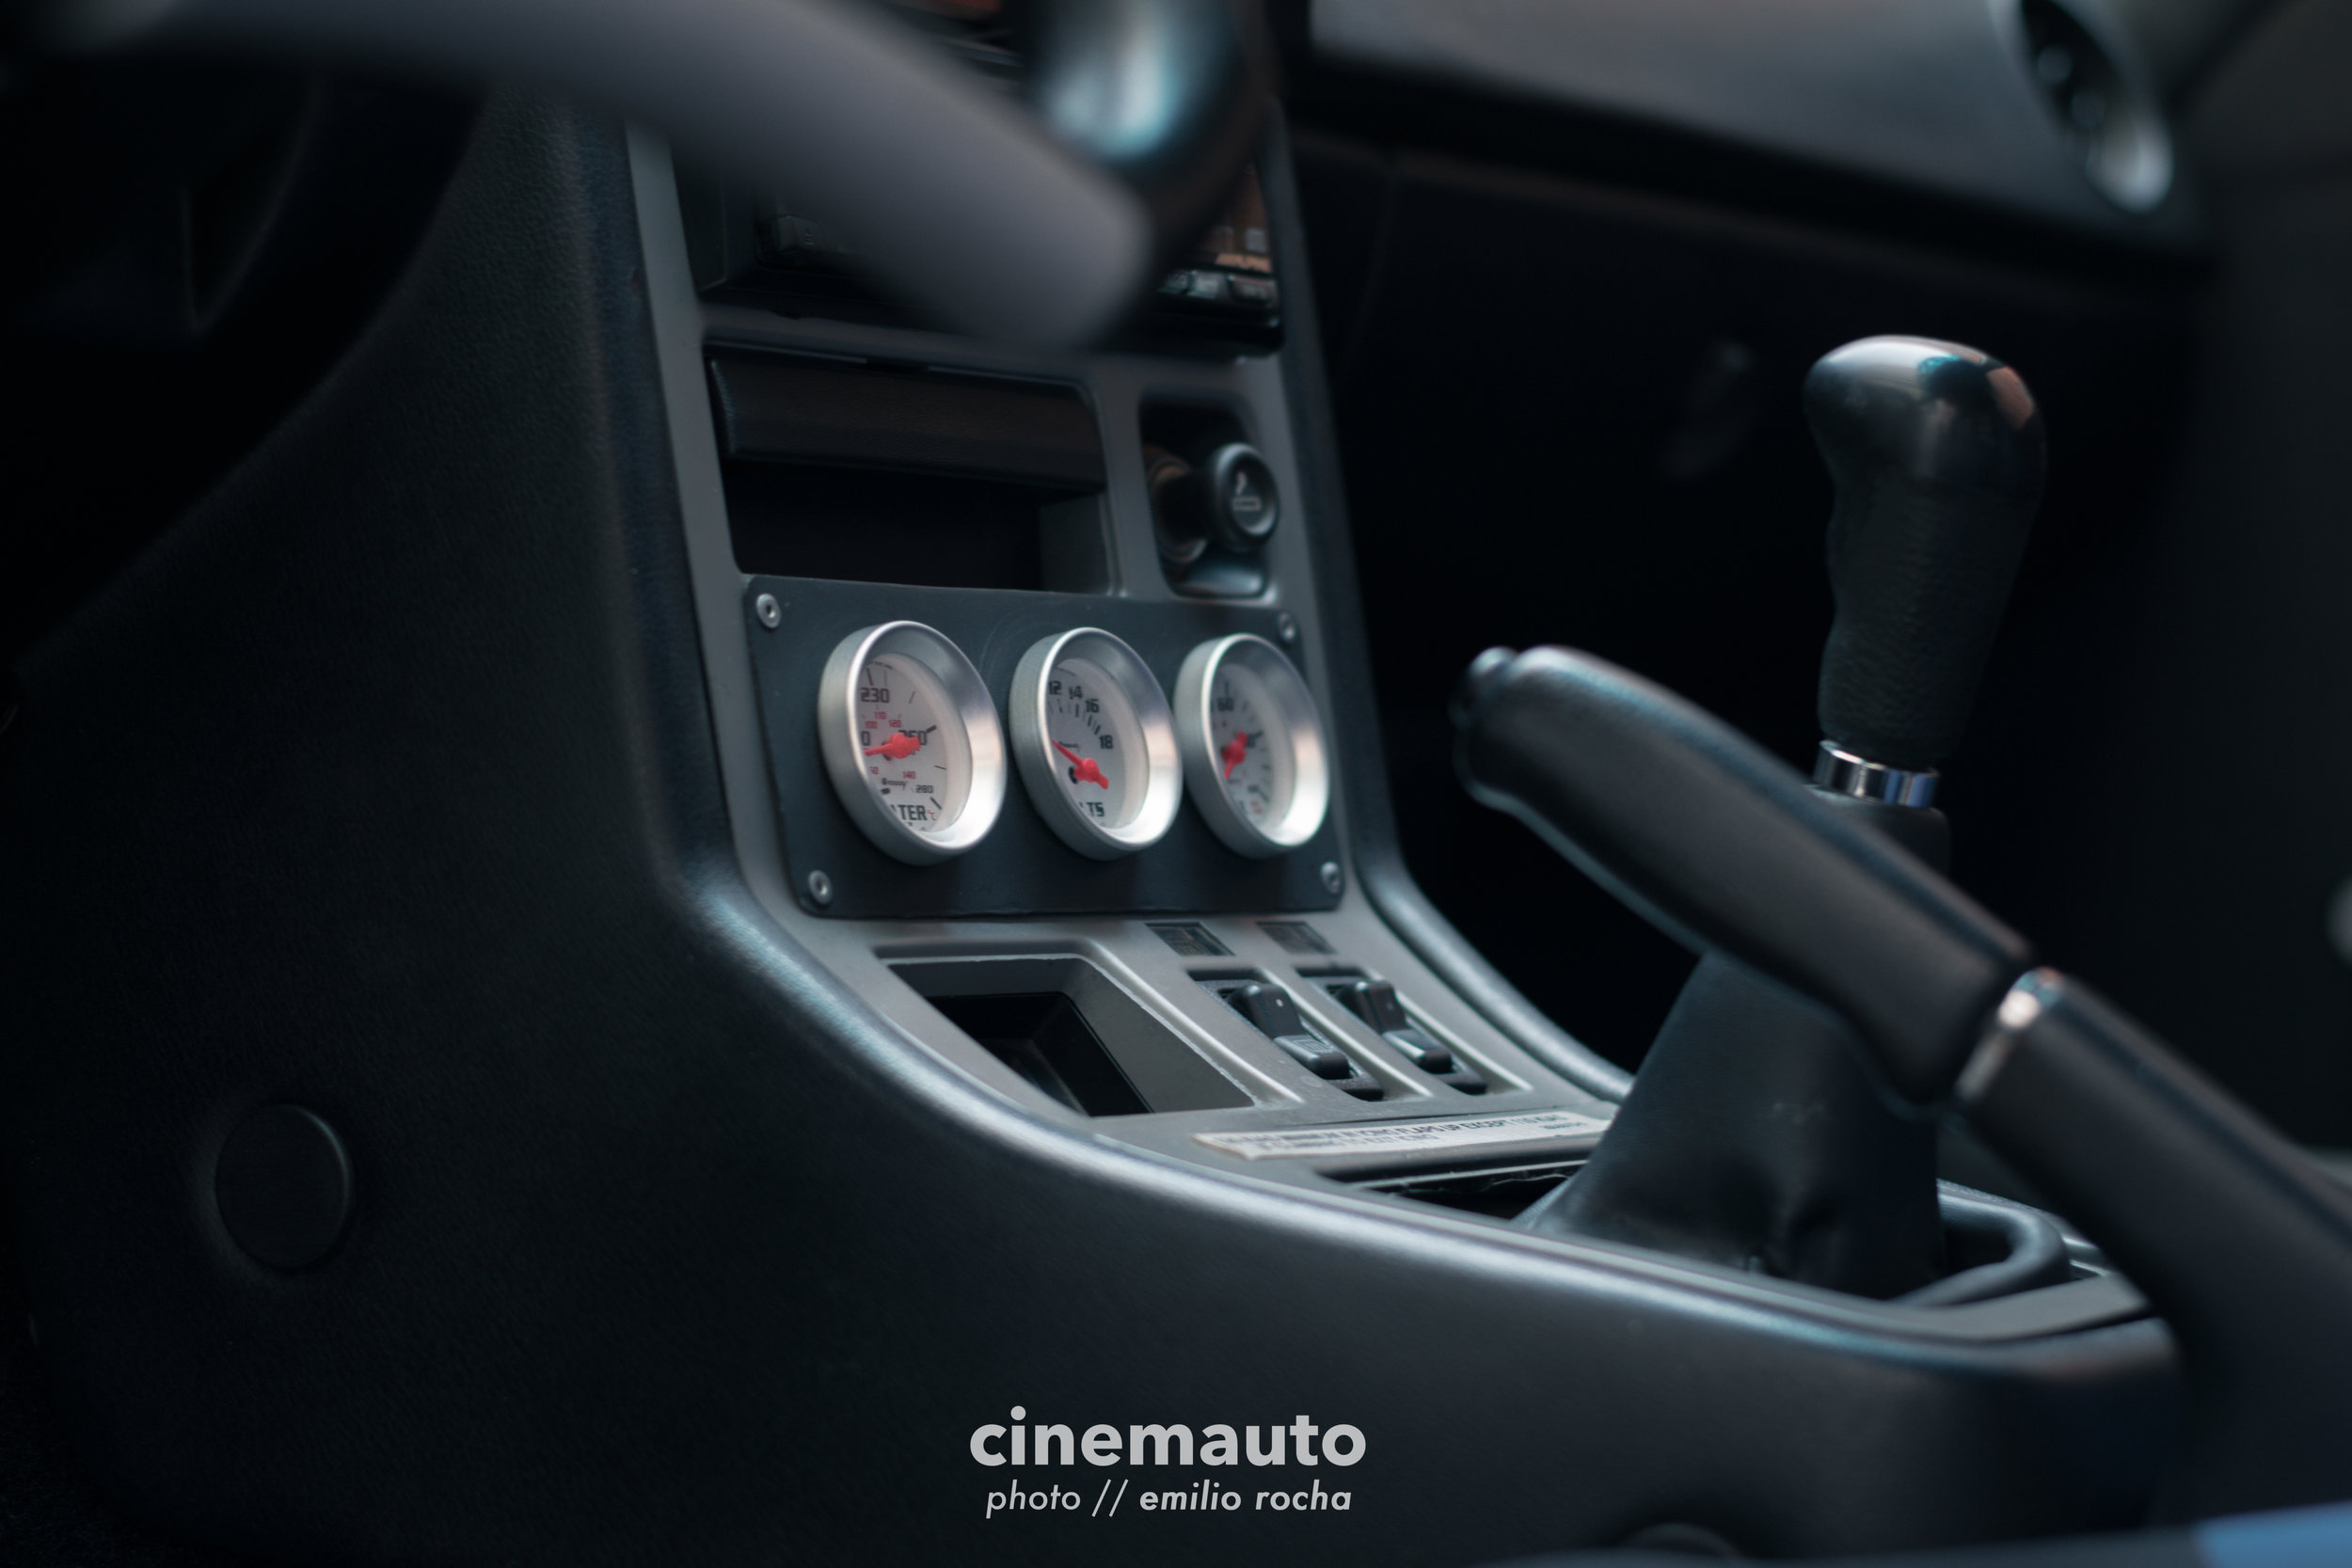 Cinemauto-RX7-3.jpg